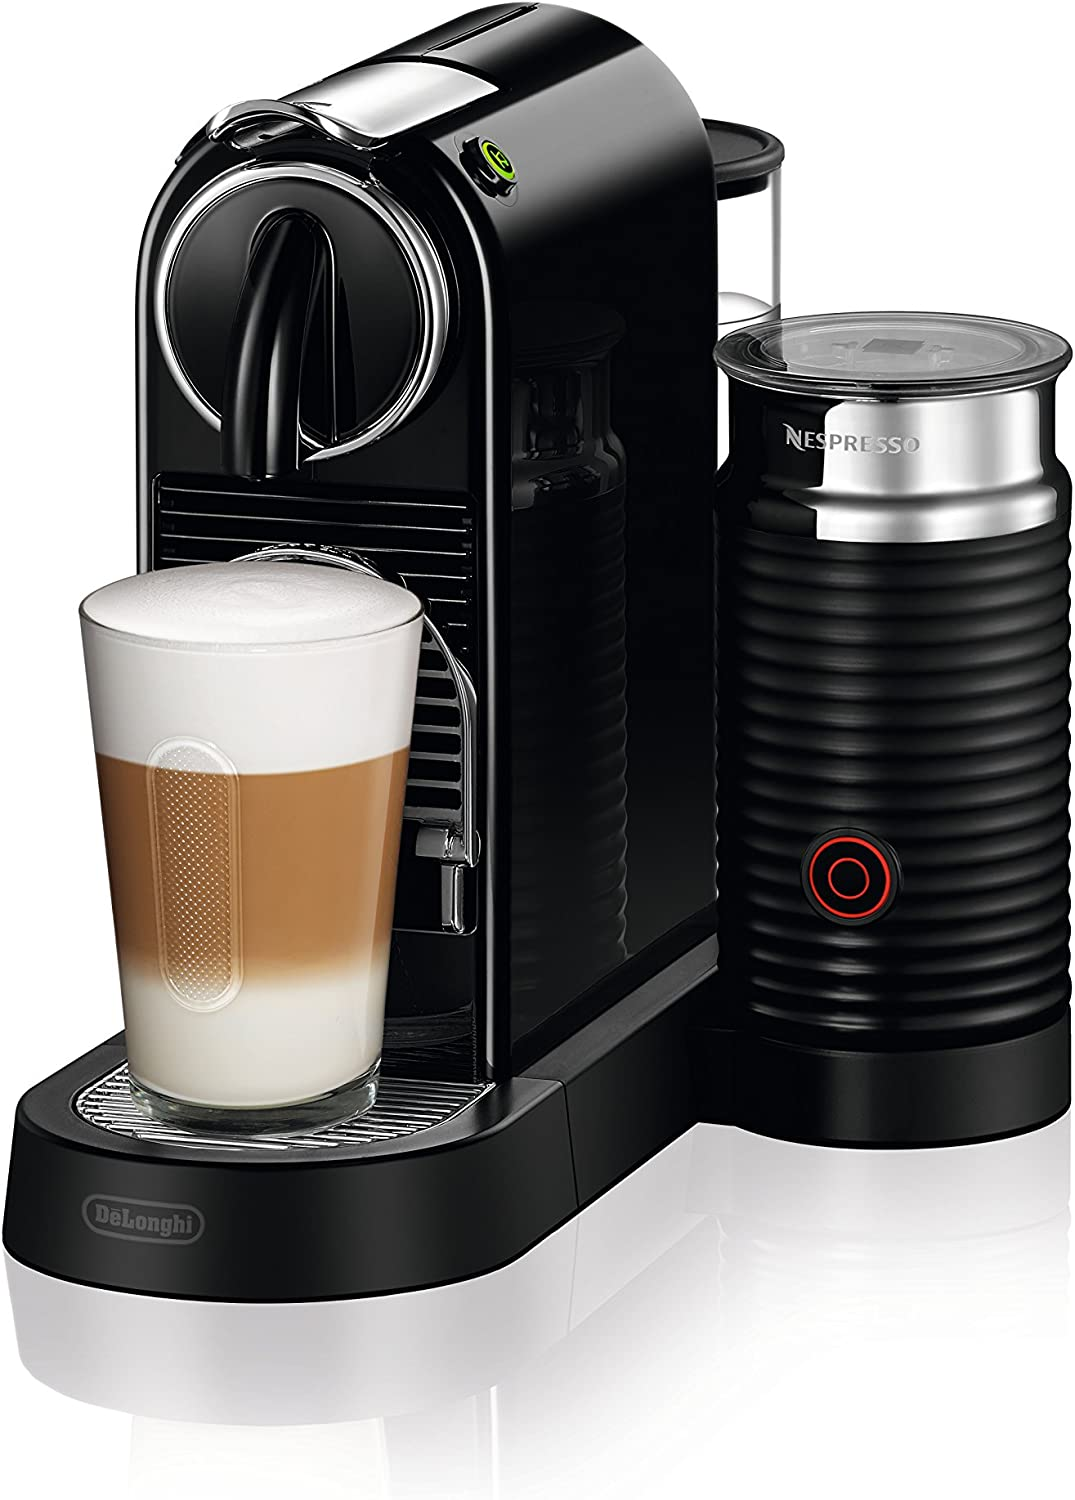 Nespresso by DeLonghi EN267BAE Original Espresso Machine Bundle with Aeroccino Milk Frother by DeLonghi, Black